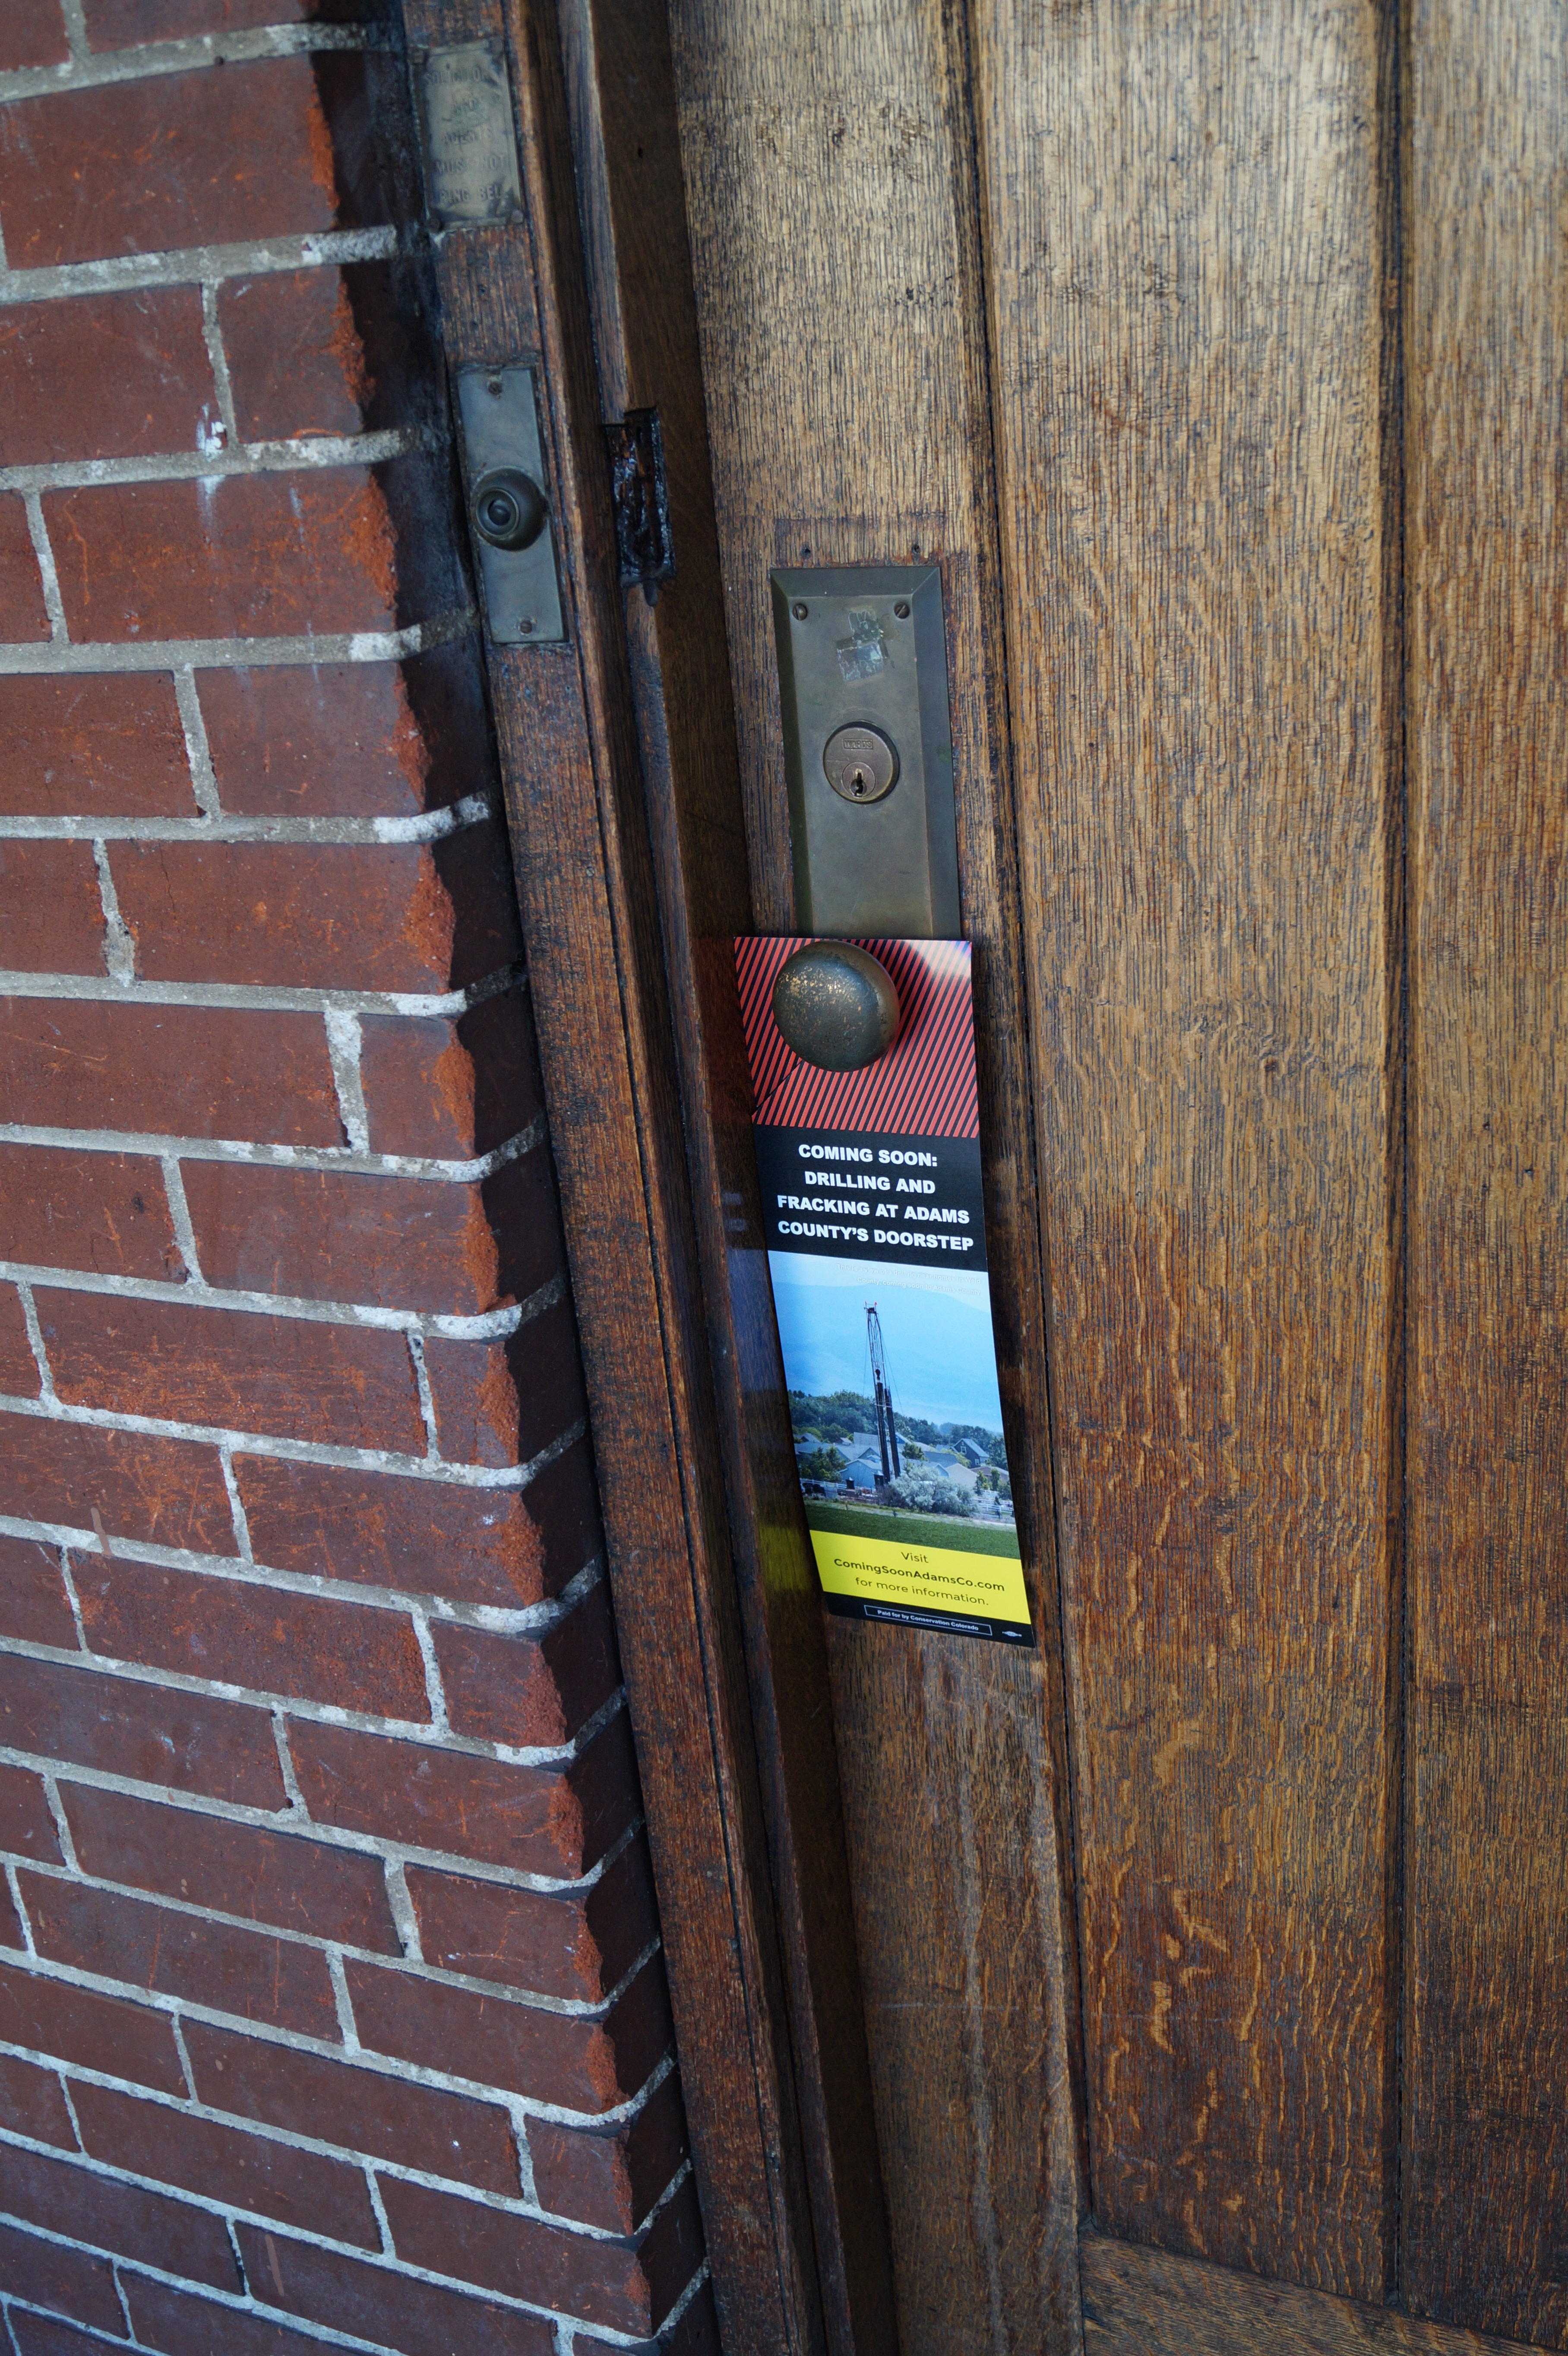 Coming Soon door hangers dropped in Adams County in February 2016.